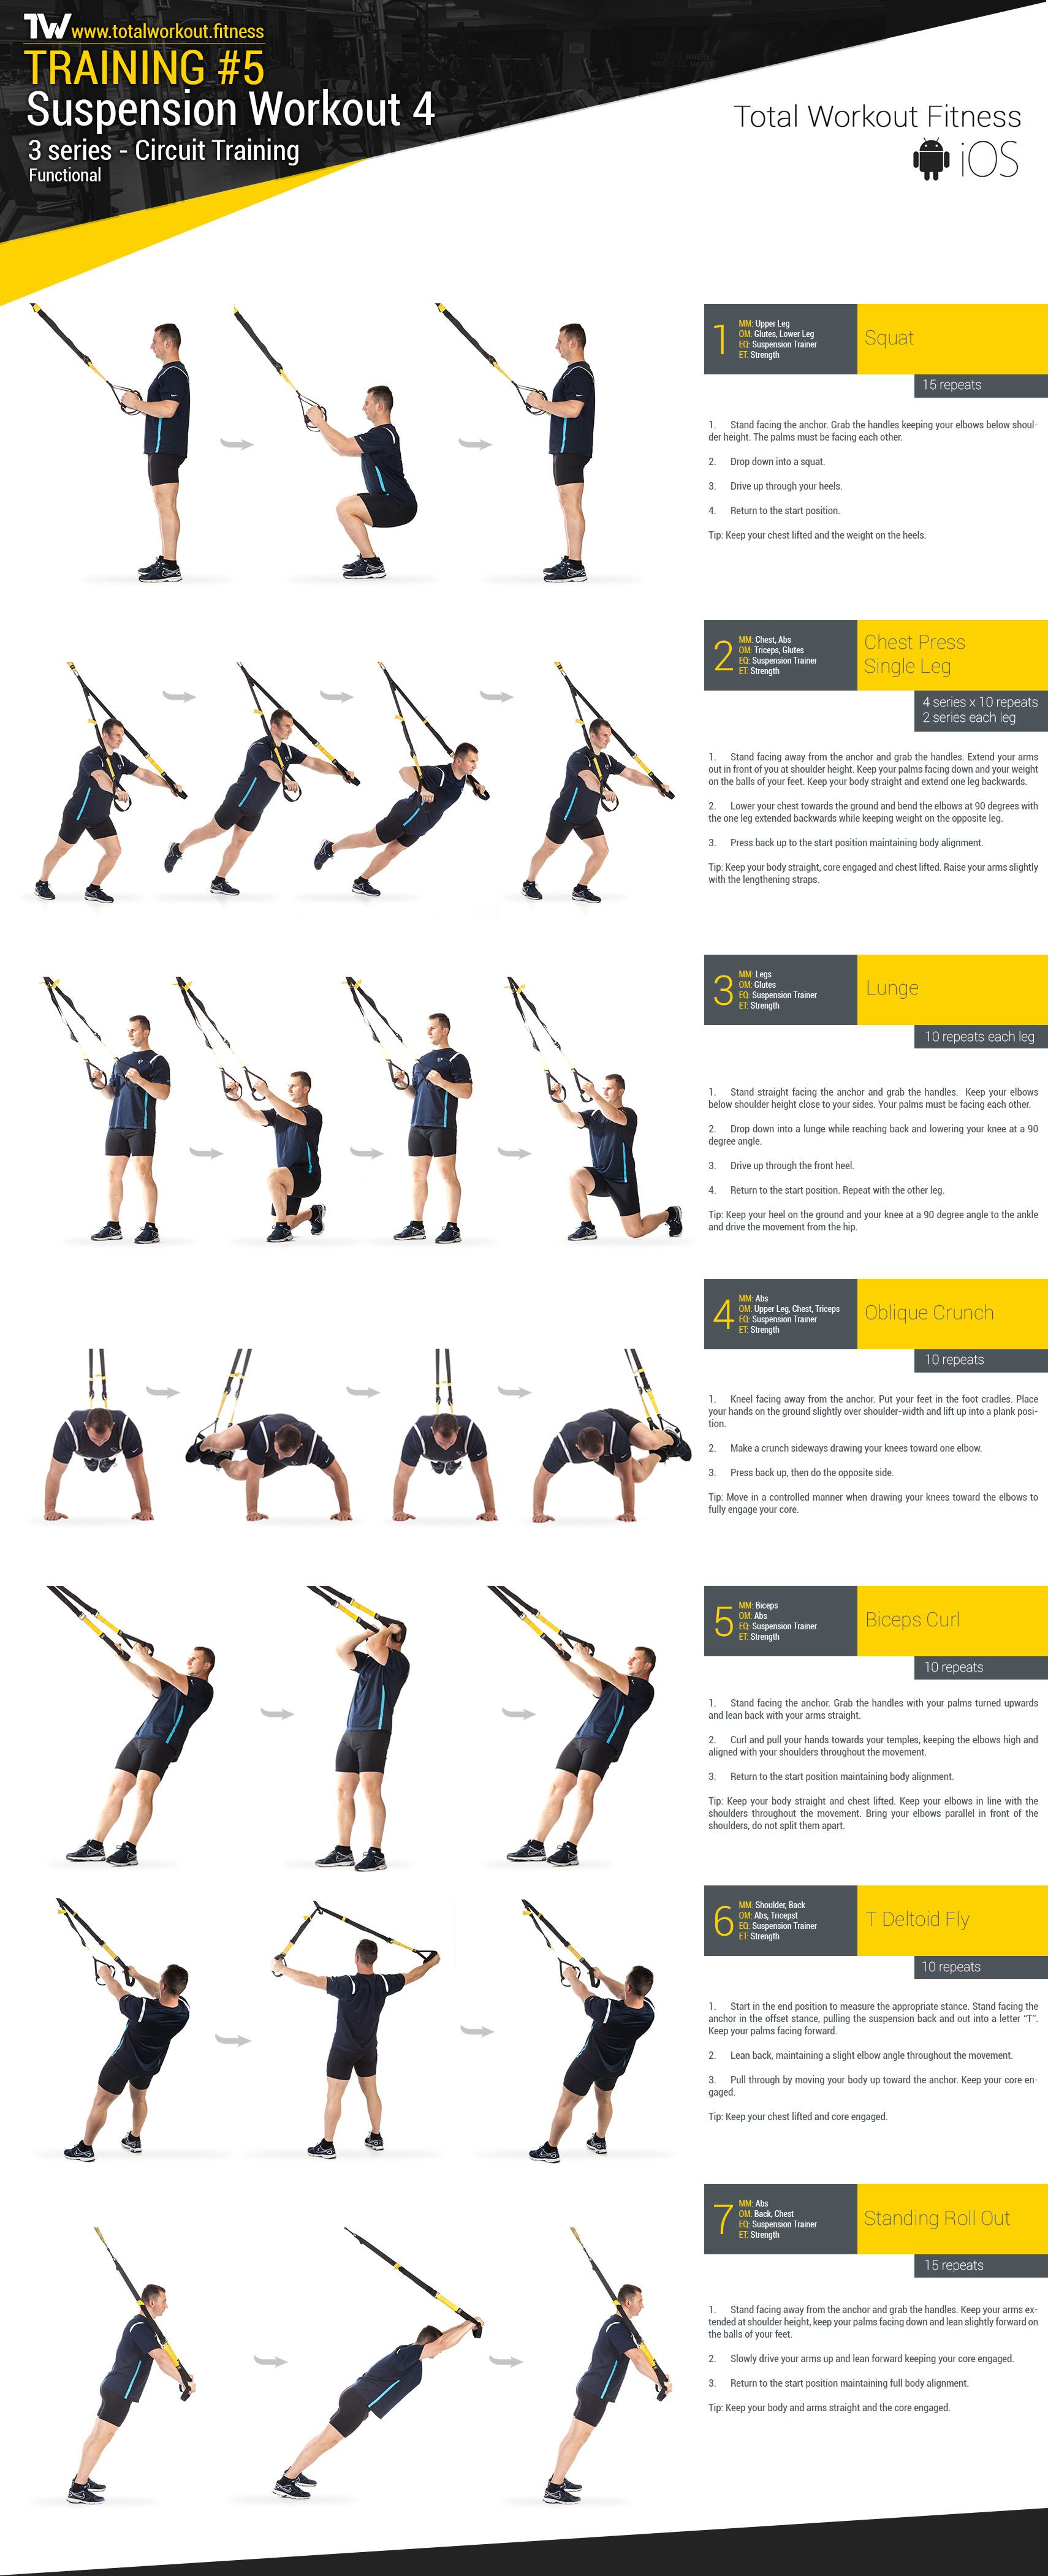 Training 5 Suspension Workout 4 Total Workout Fitness Trx Ejercicios Entrenamientos Trx Rutinas De Entrenamiento